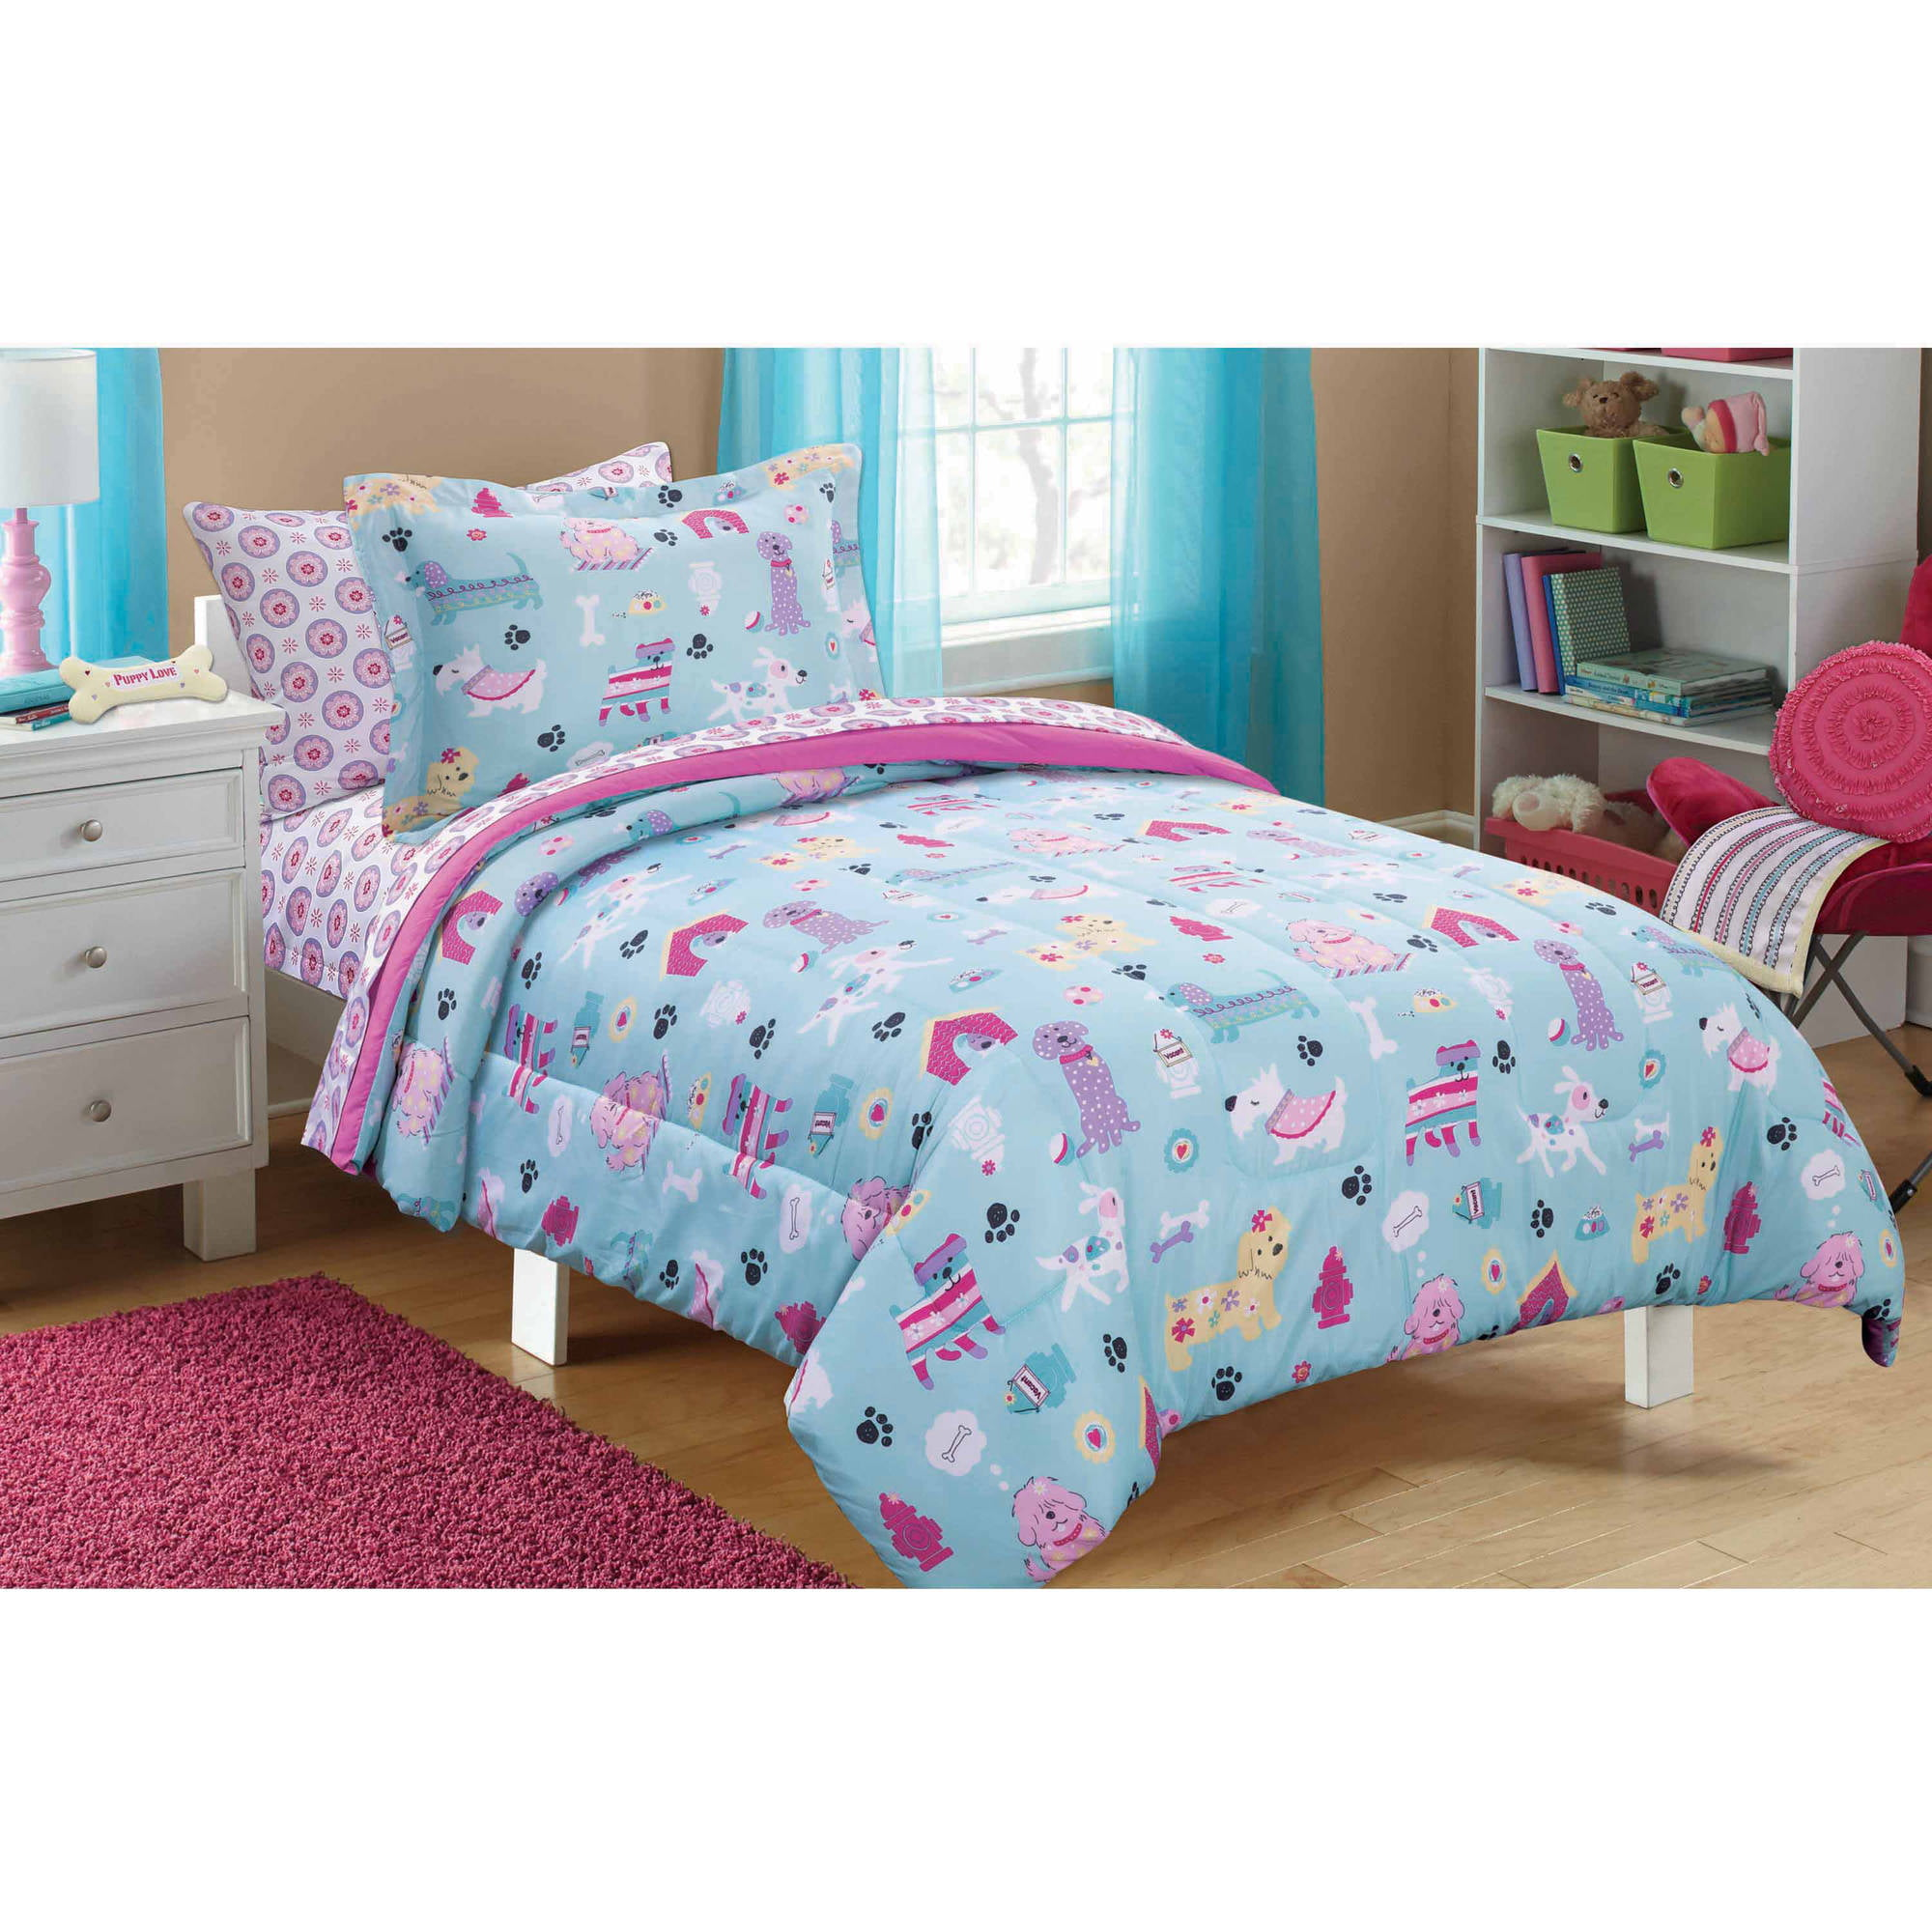 Bedding sets for women - Bedding Sets For Women 48